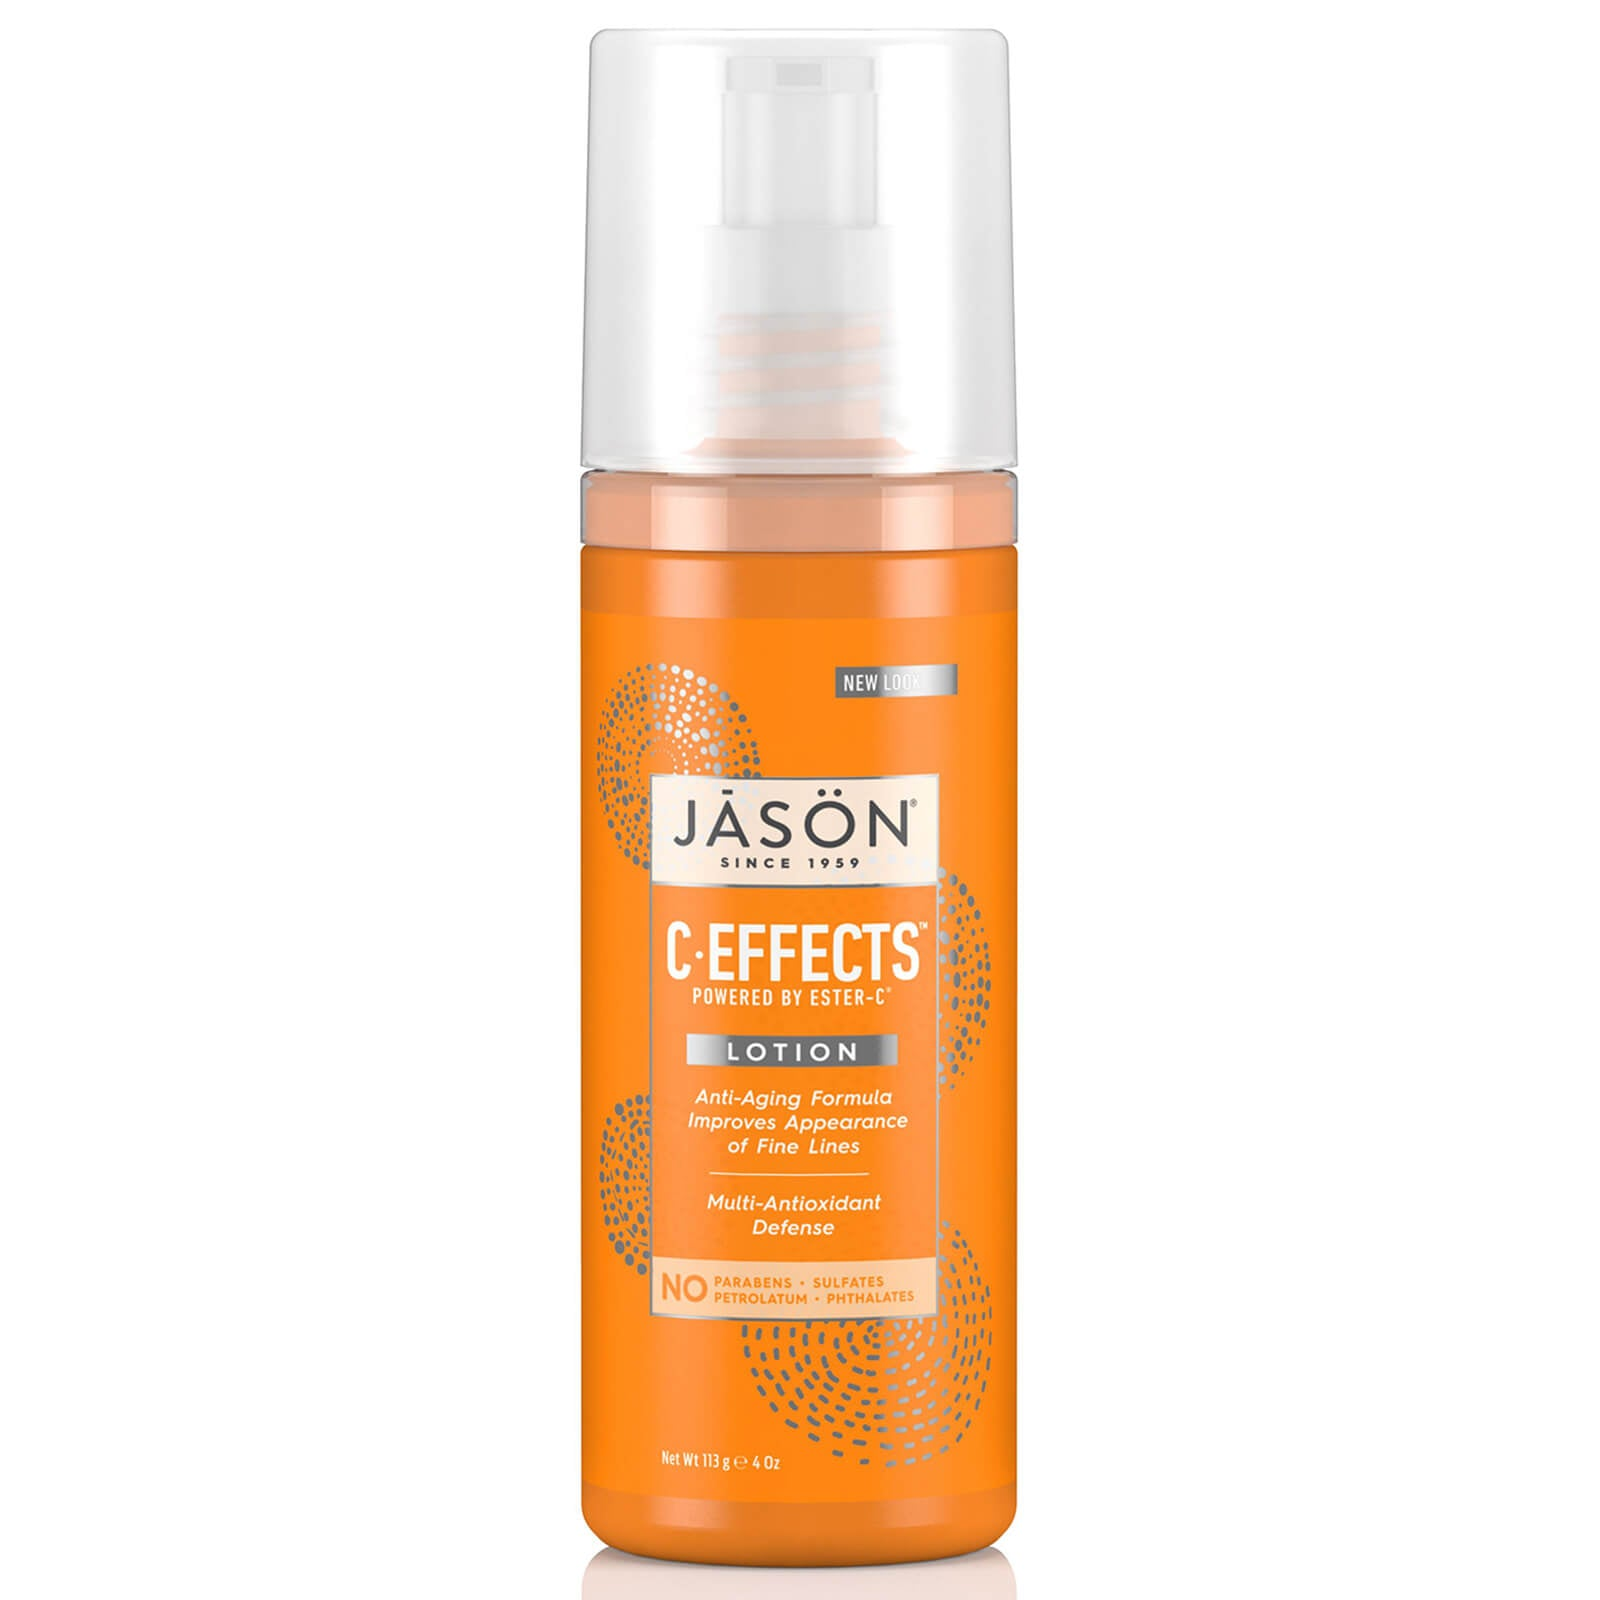 JASON C-Effects Lotion